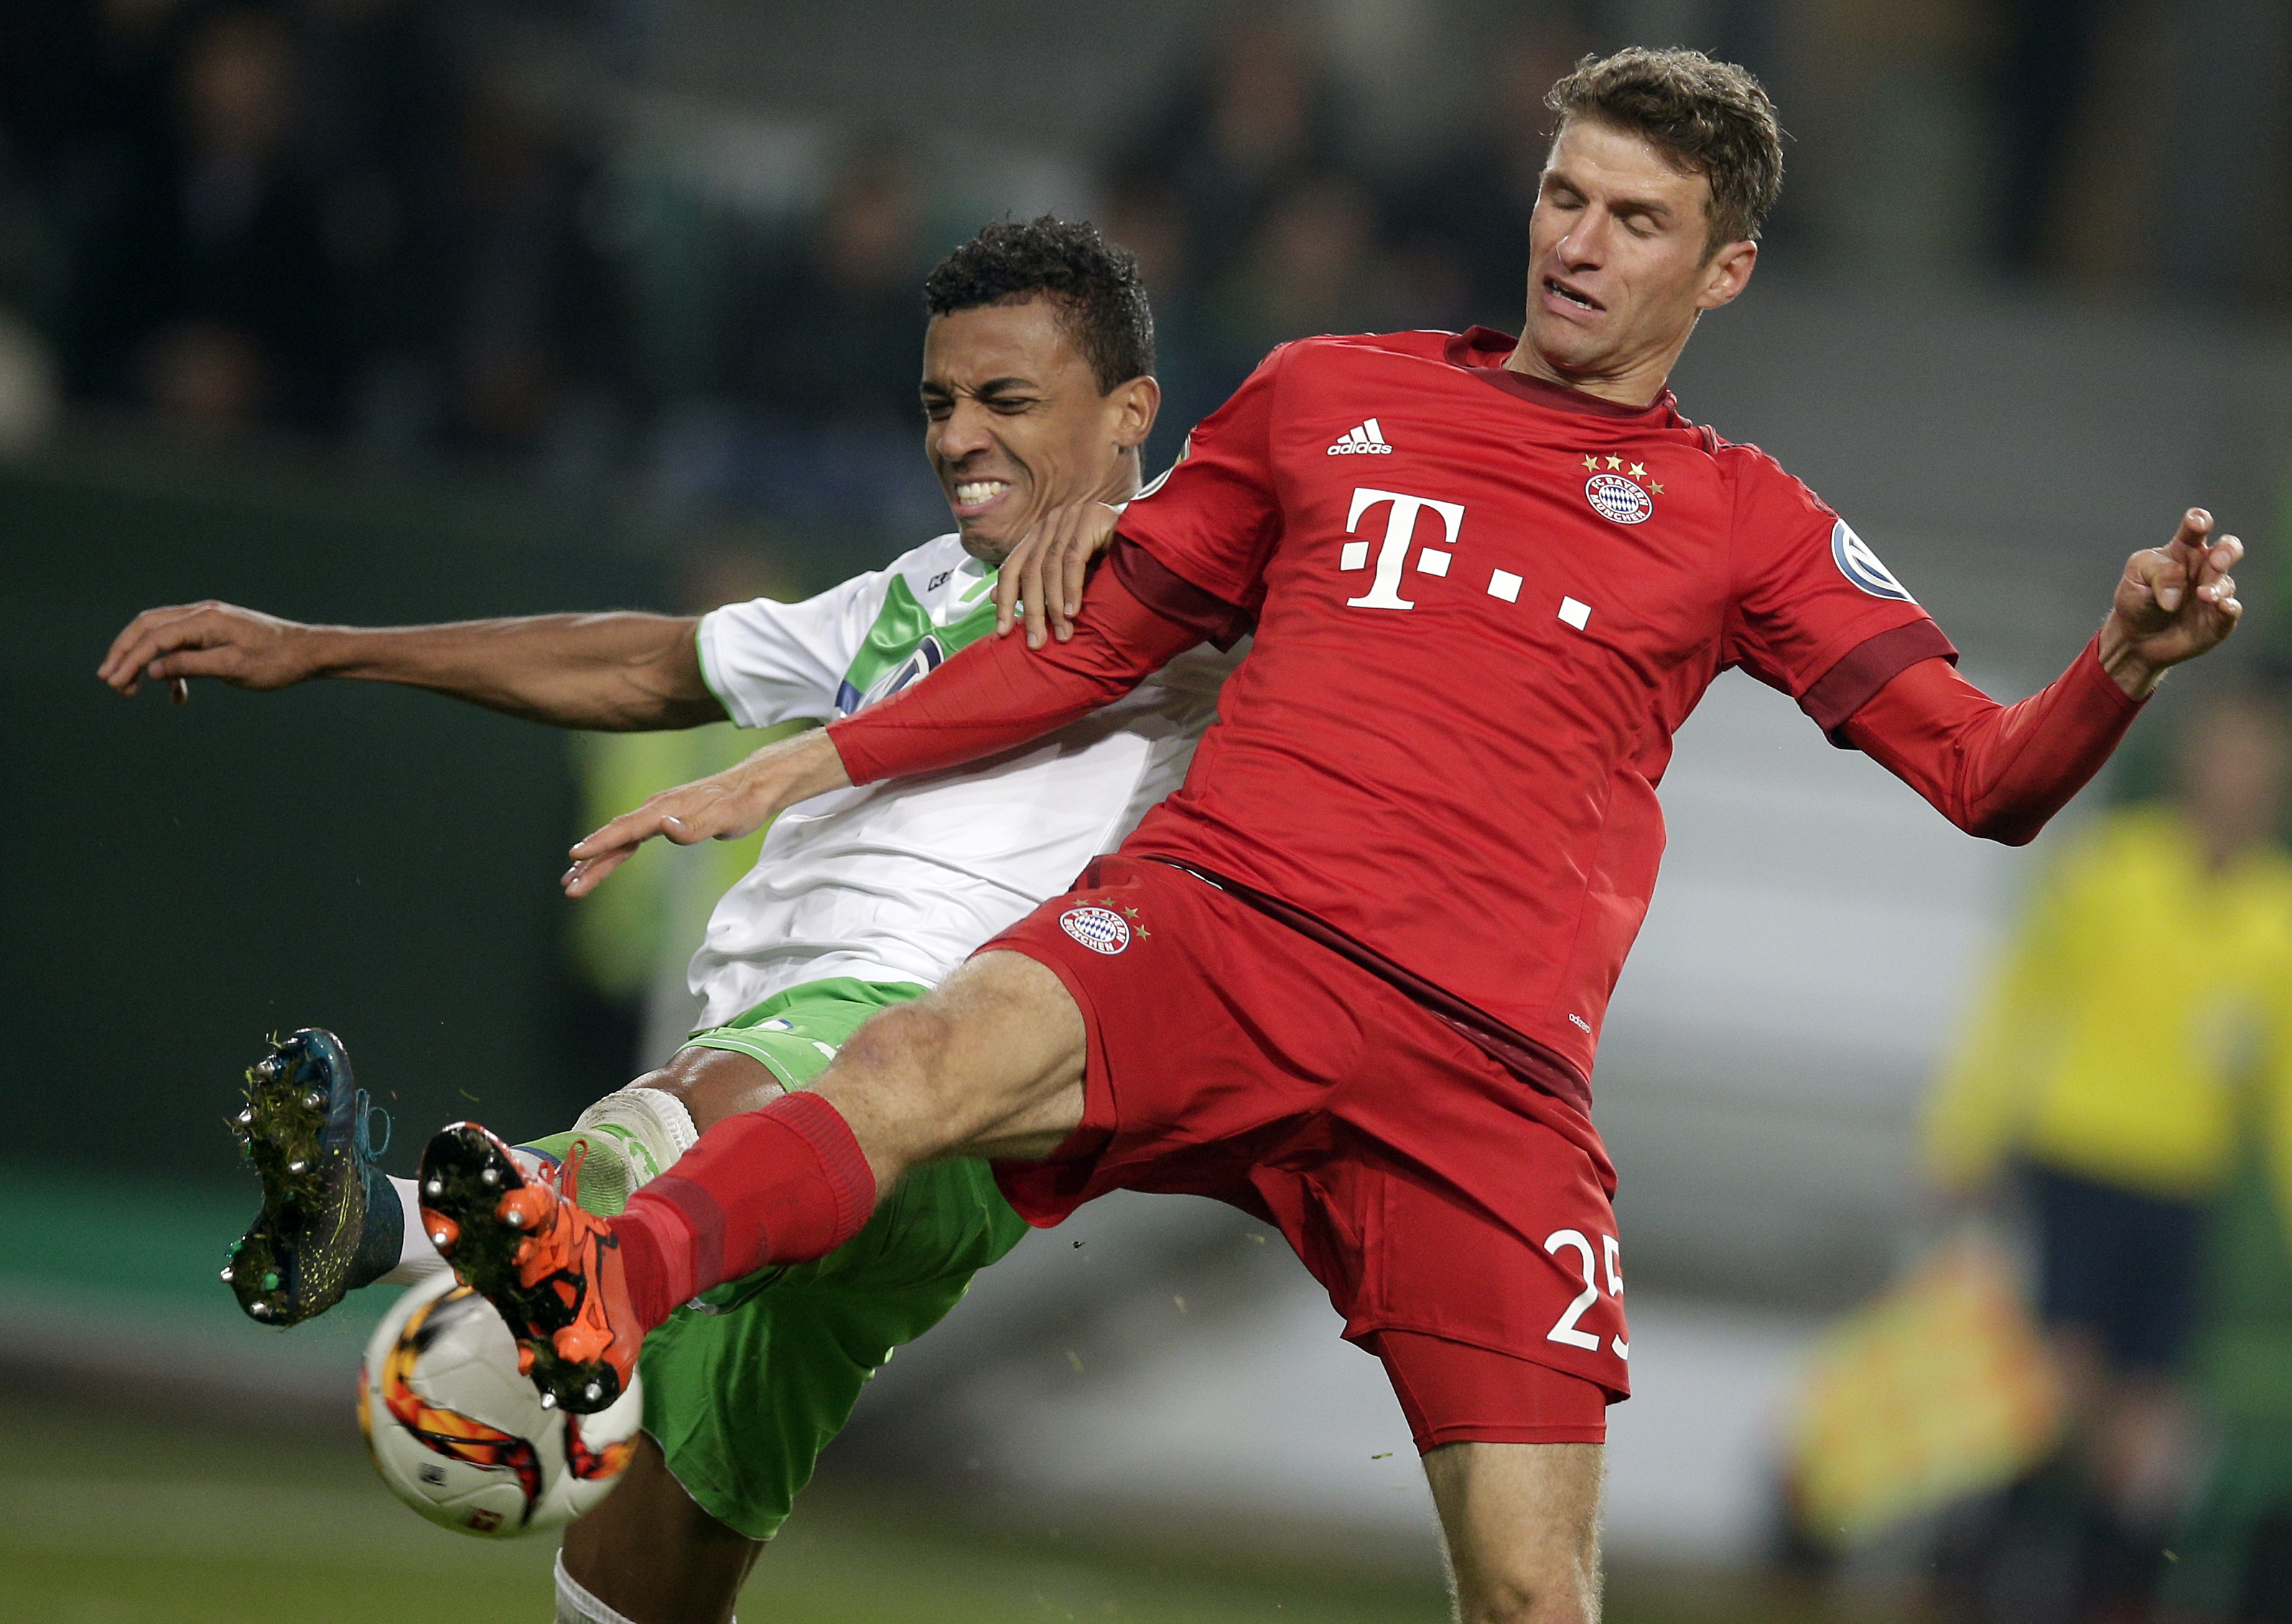 Wolfsburg's Luiz Gustavo, left, and Bayern's Thomas Mueller, right, challenge for the ball during the German soccer cup second round match between VfL Wolfsburg and FC Bayern Munich in Wolfsburg, Germany, Tuesday, Oct. 27, 2015. (AP Photo/Michael Sohn)